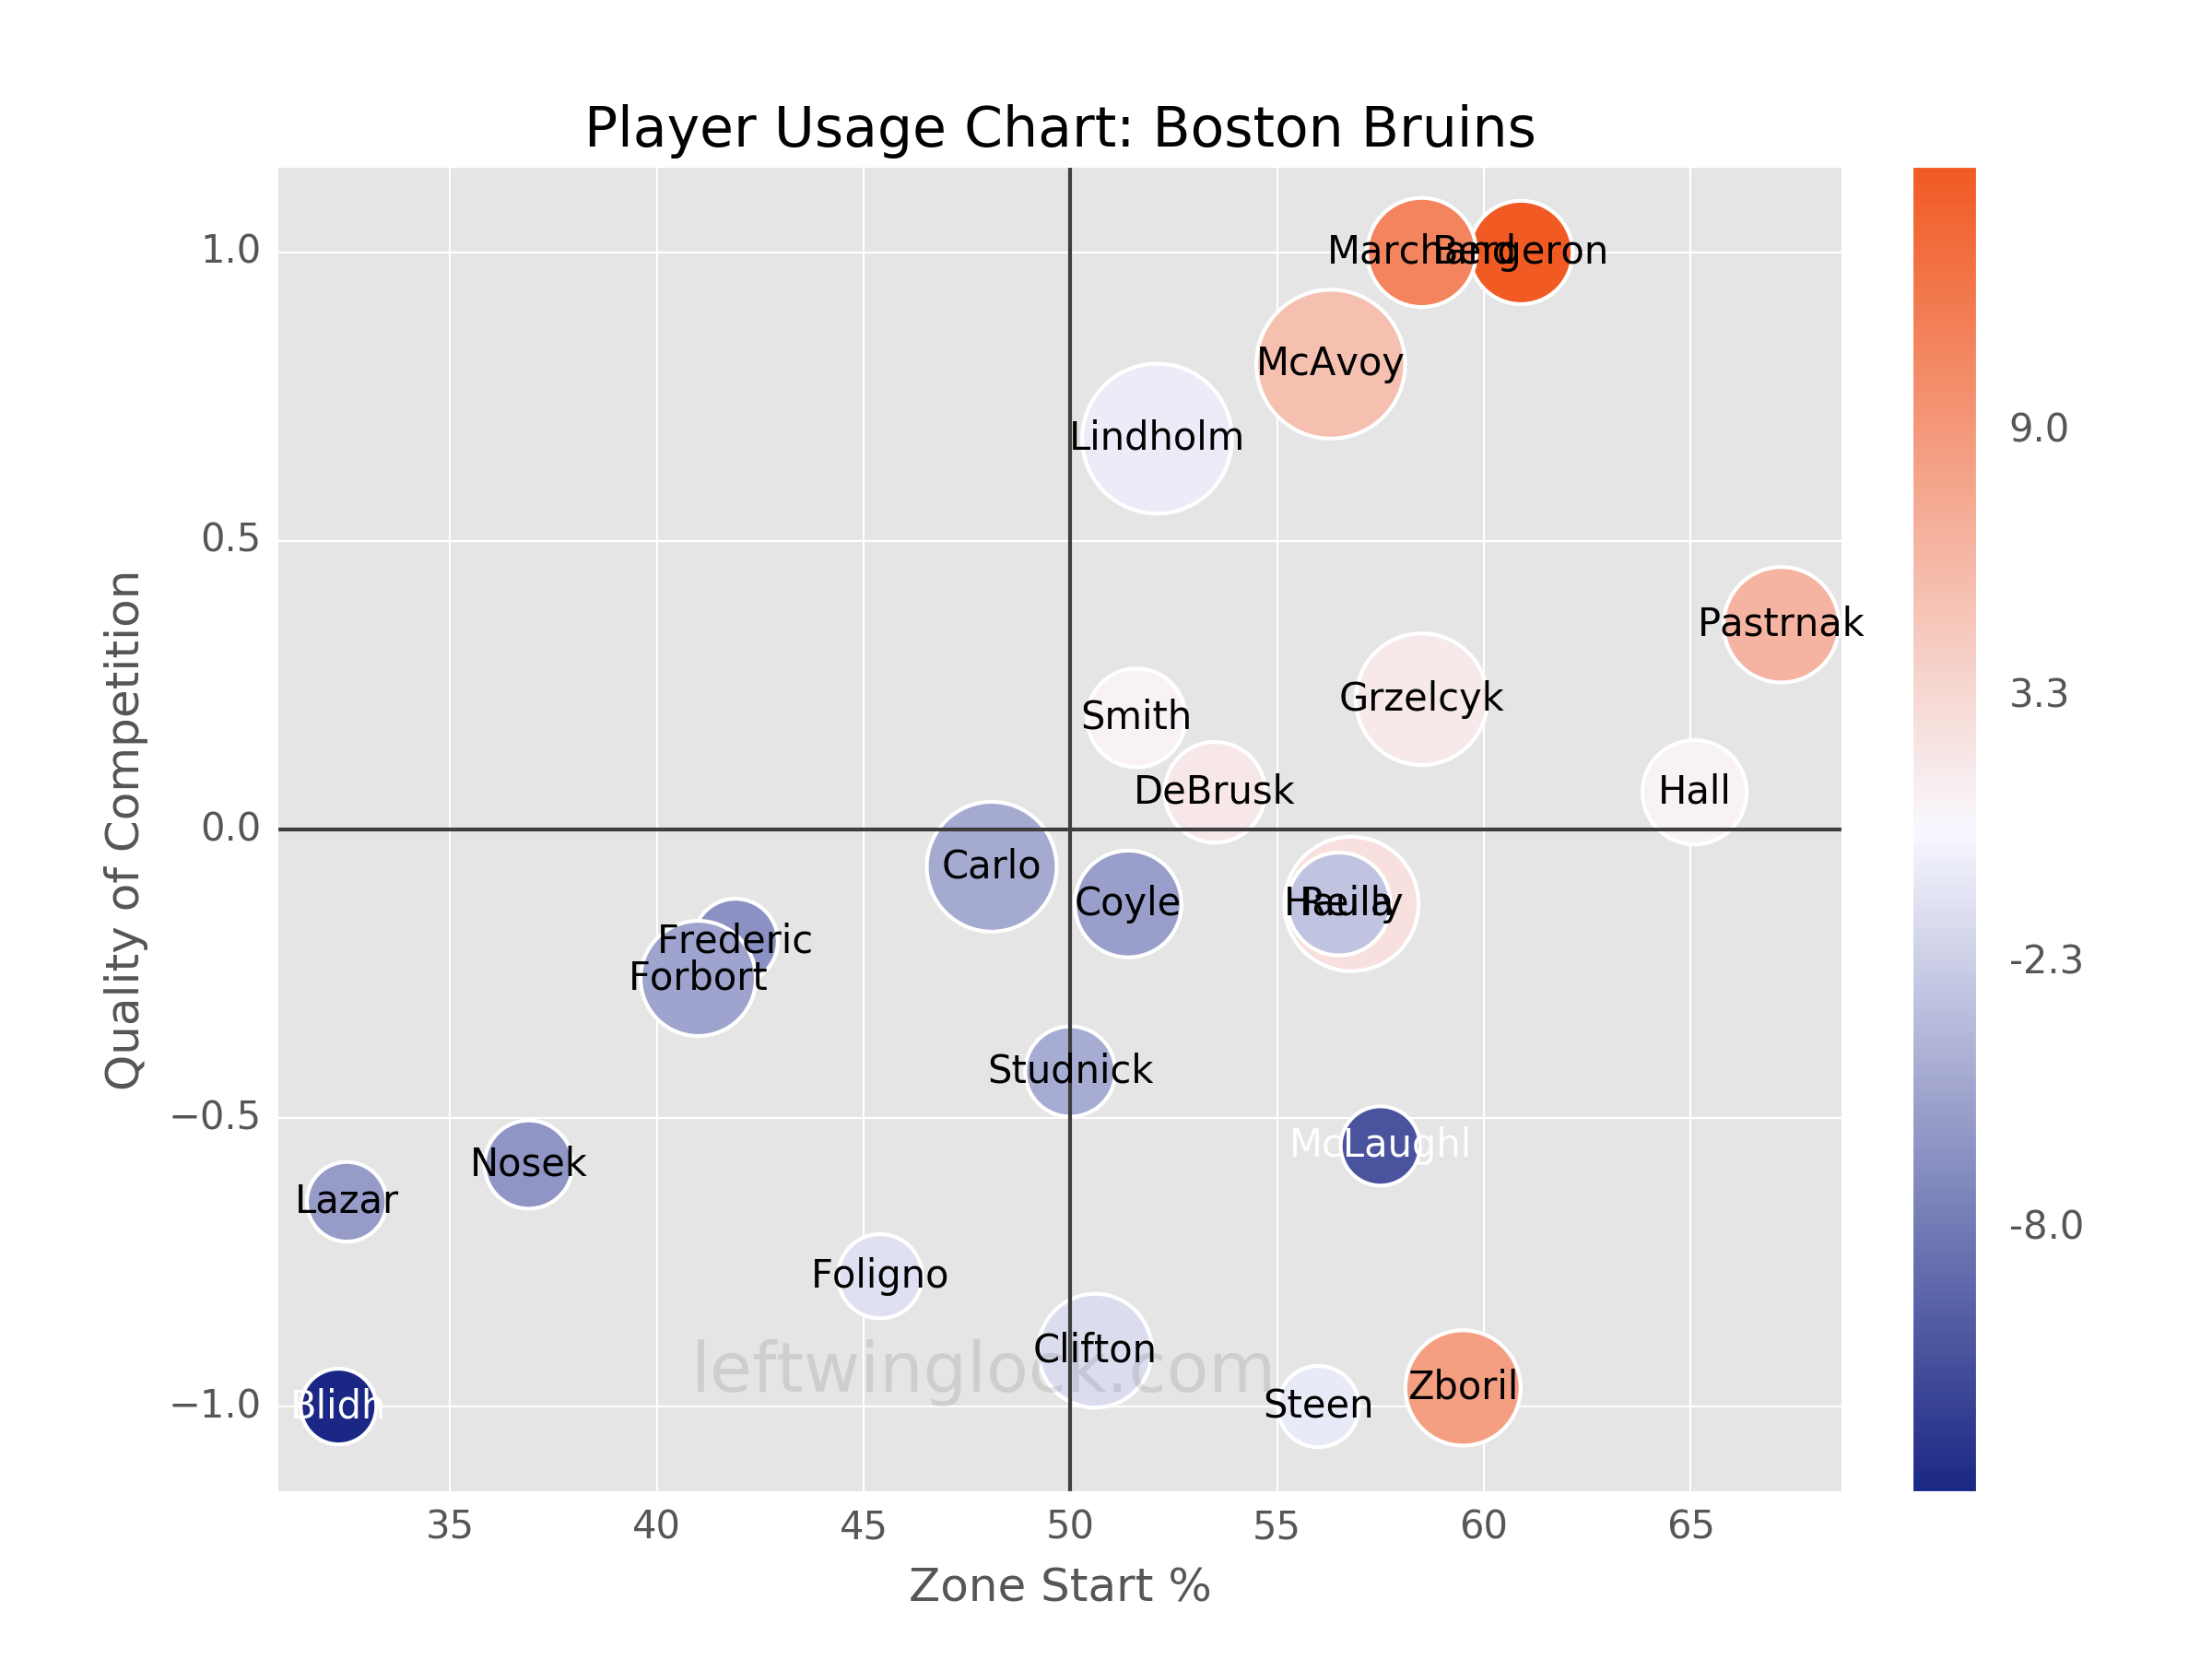 Boston Bruins Player Usage Chart